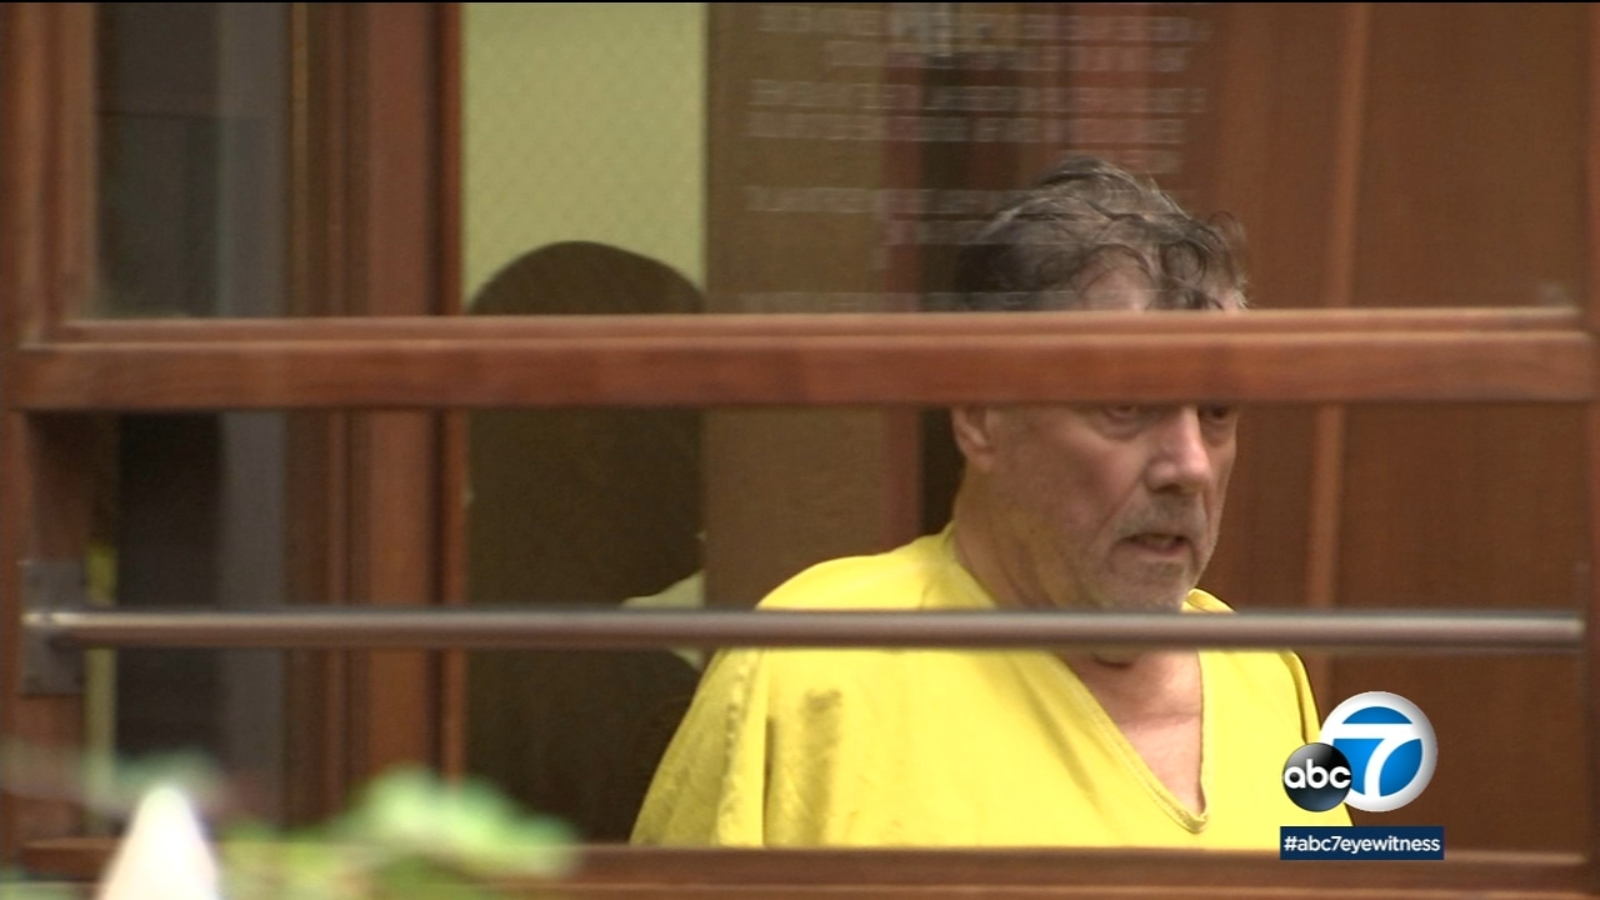 Ex-USC gynecologist George Tyndall released from jail after posting bail